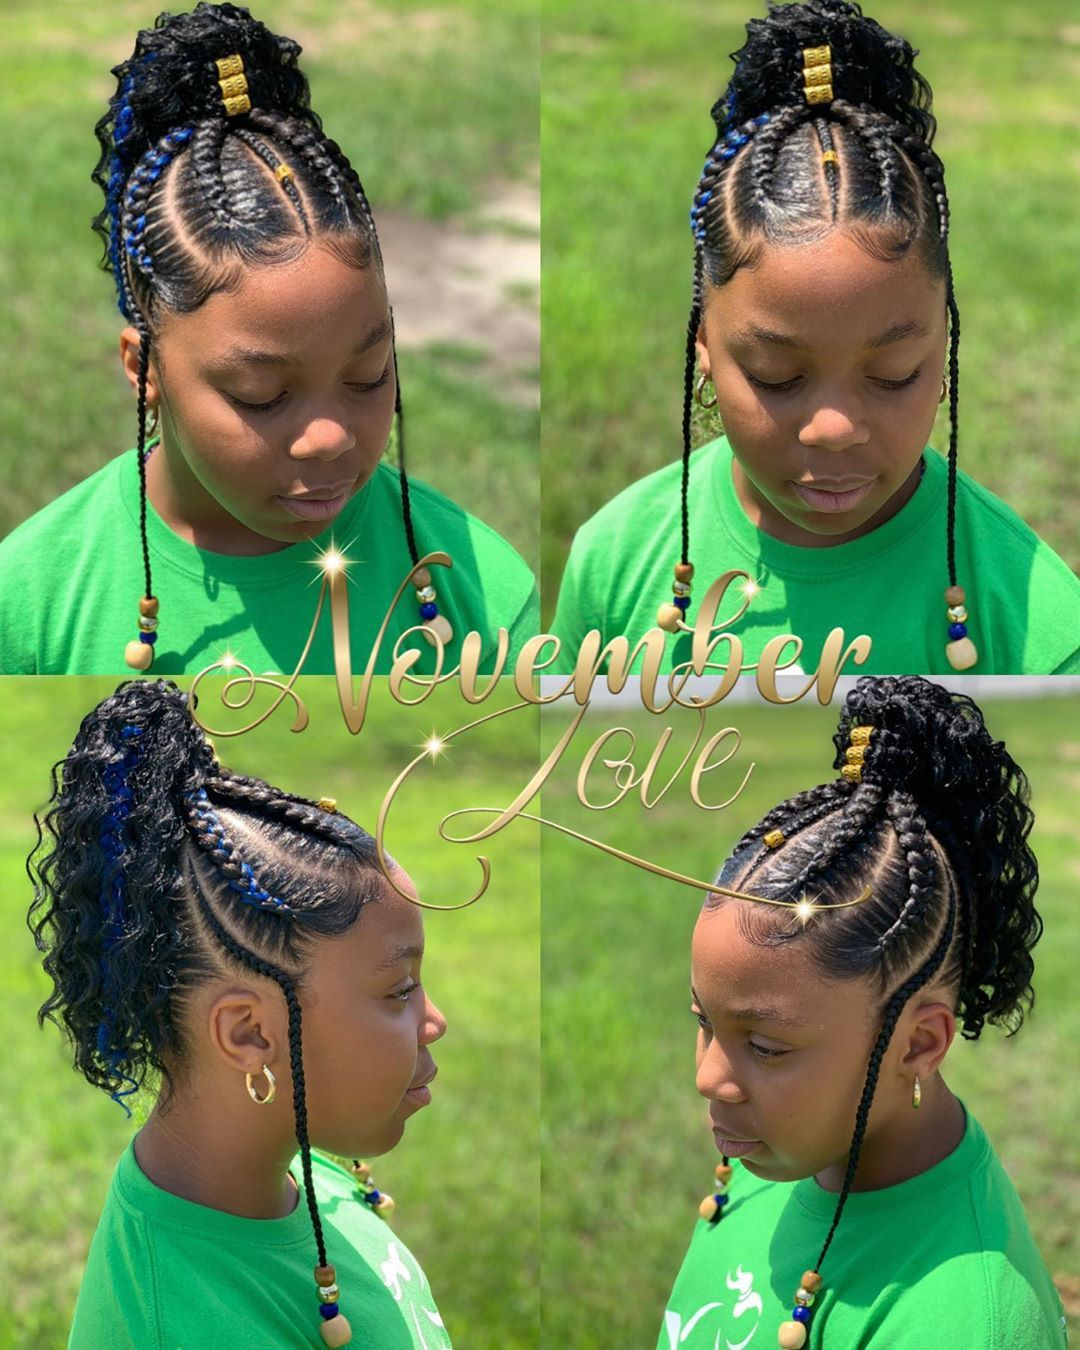 Hairstyles For 9 Year Olds Black Girl : hairstyles, black, Image, Contain:, People, Girls, Hairstyles, Braids,, Styles,, Braided